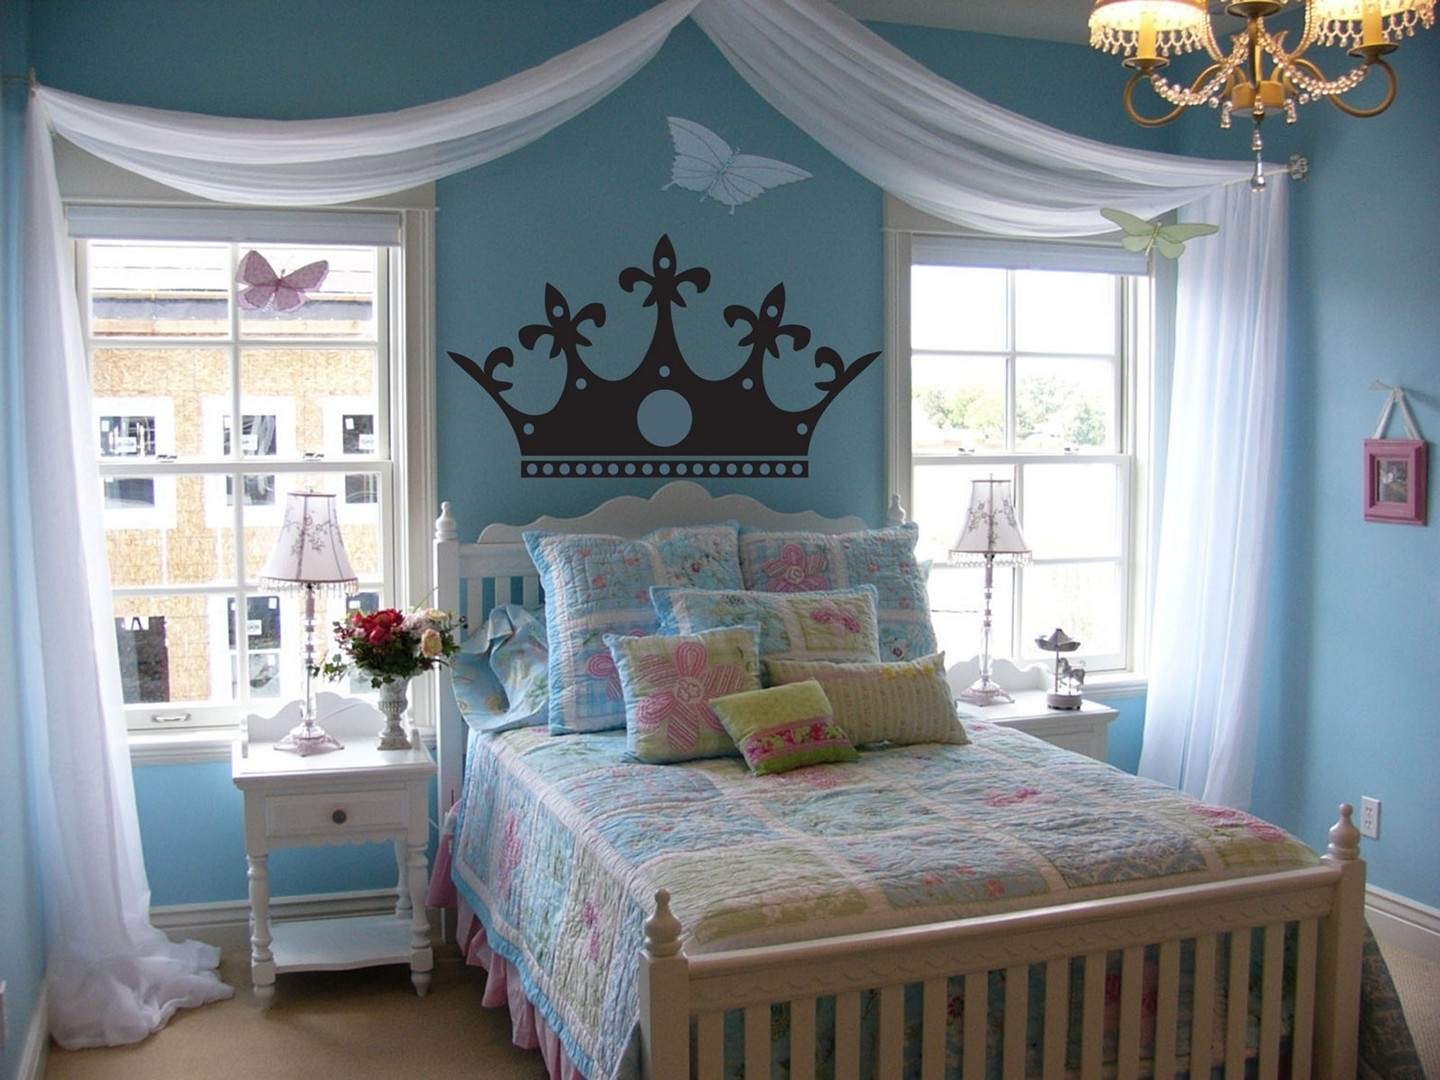 Newest 3D Princess Crown Wall Art Decor In 3D Princess Crown Wall Art Decor – Homestylediary (View 13 of 15)